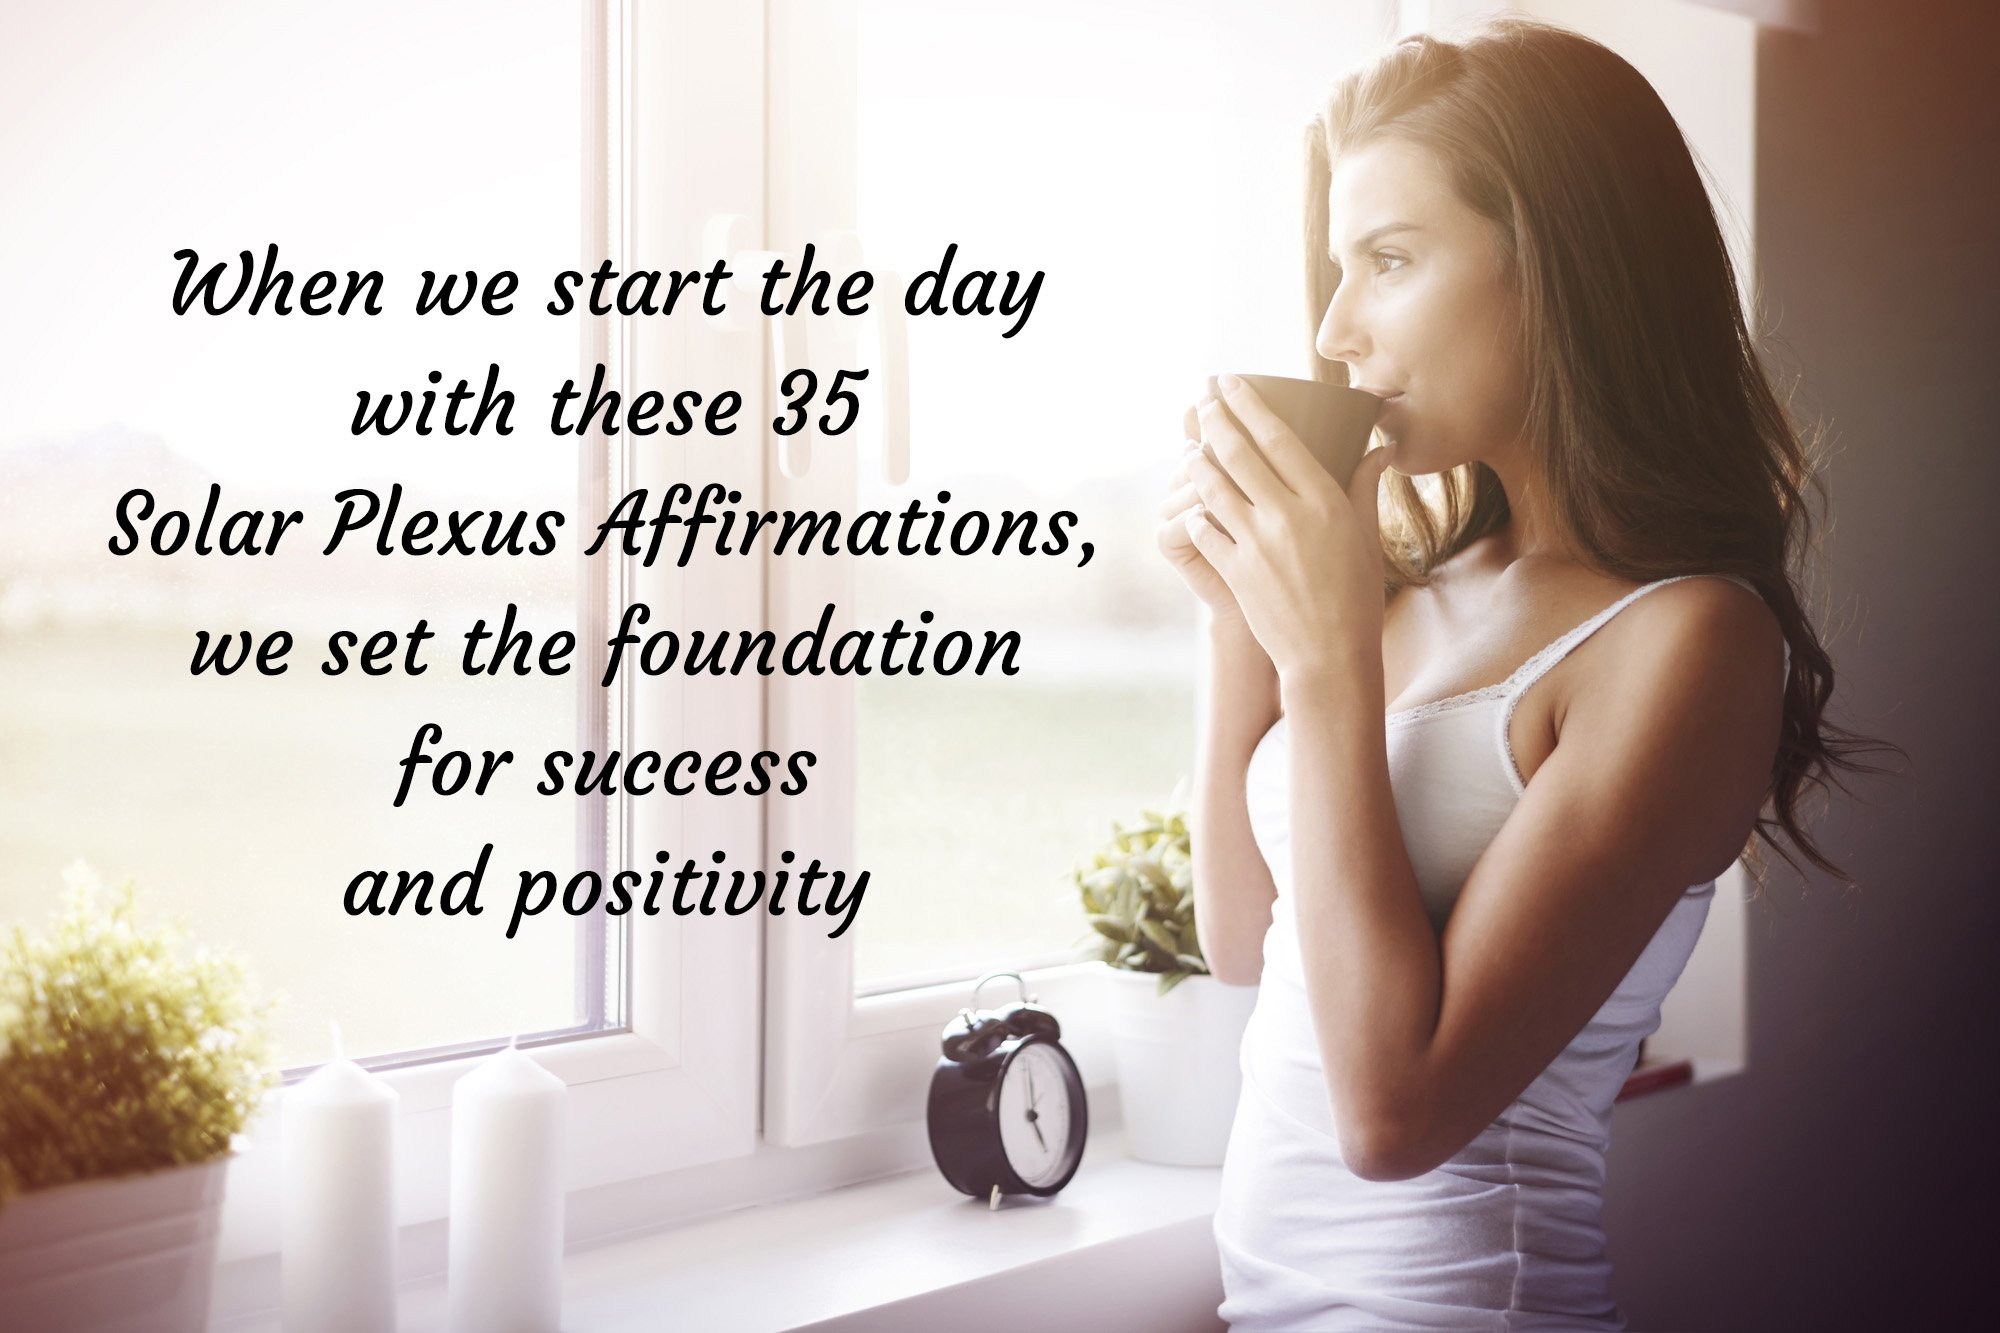 Start the day with affirmations